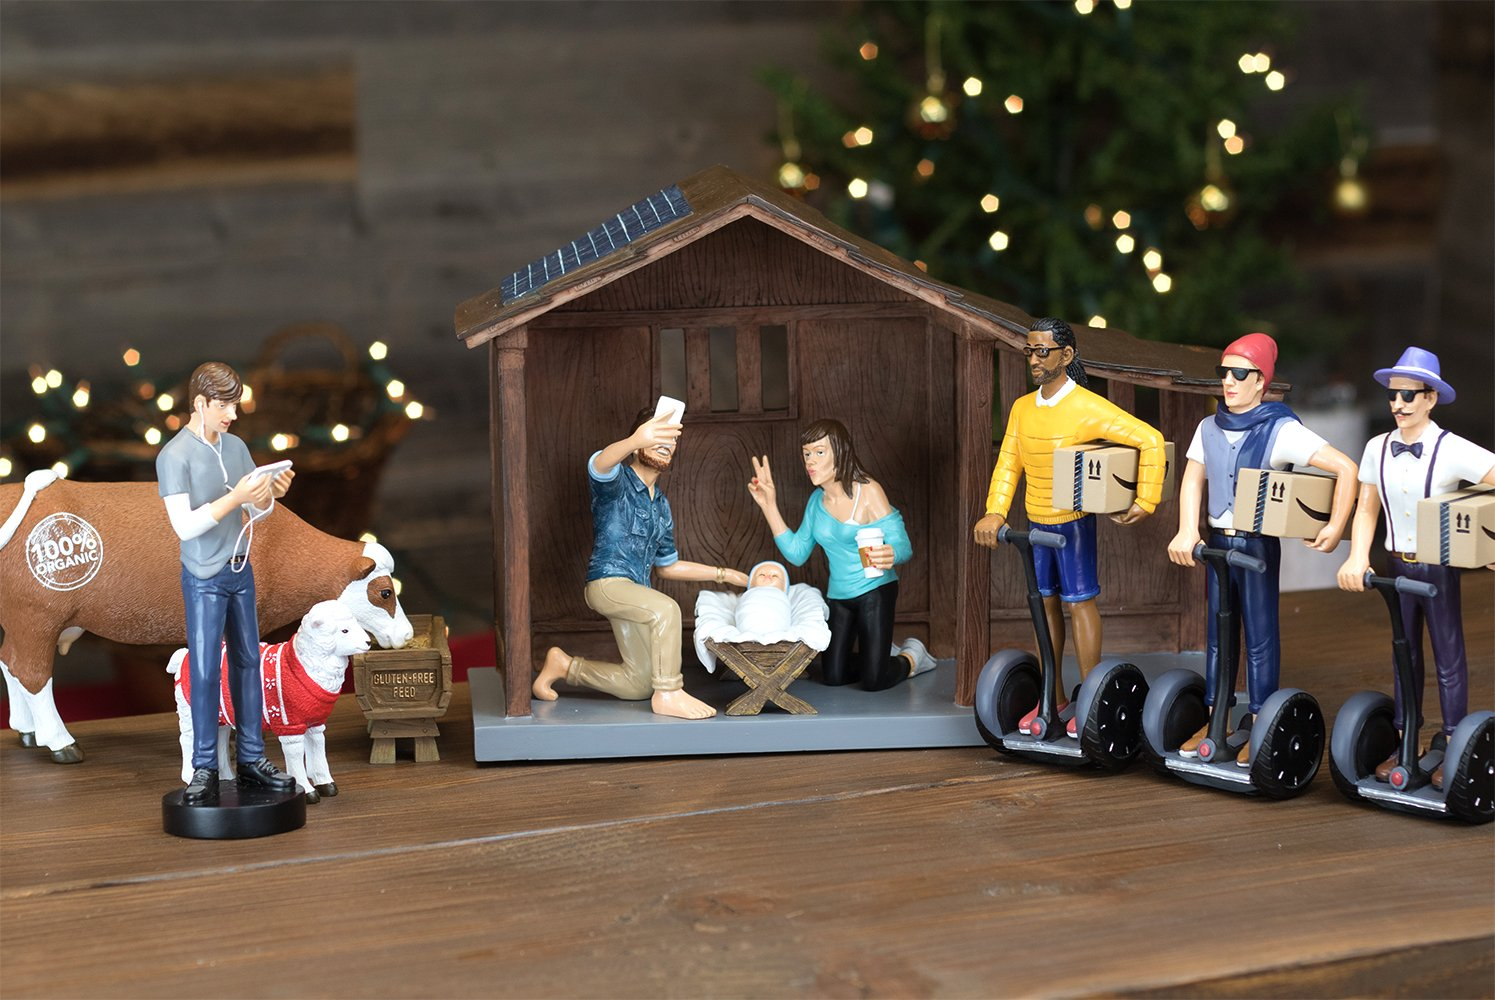 "Nativity Figurine and Stable Set - Hipster Nativity Scene - Holiday Gifts - Christmas Gifts - Millennial Christmas - Each Piece 100% Hand Painted and Made of Durable Polyresin - 7"" Figurines - Full Se"